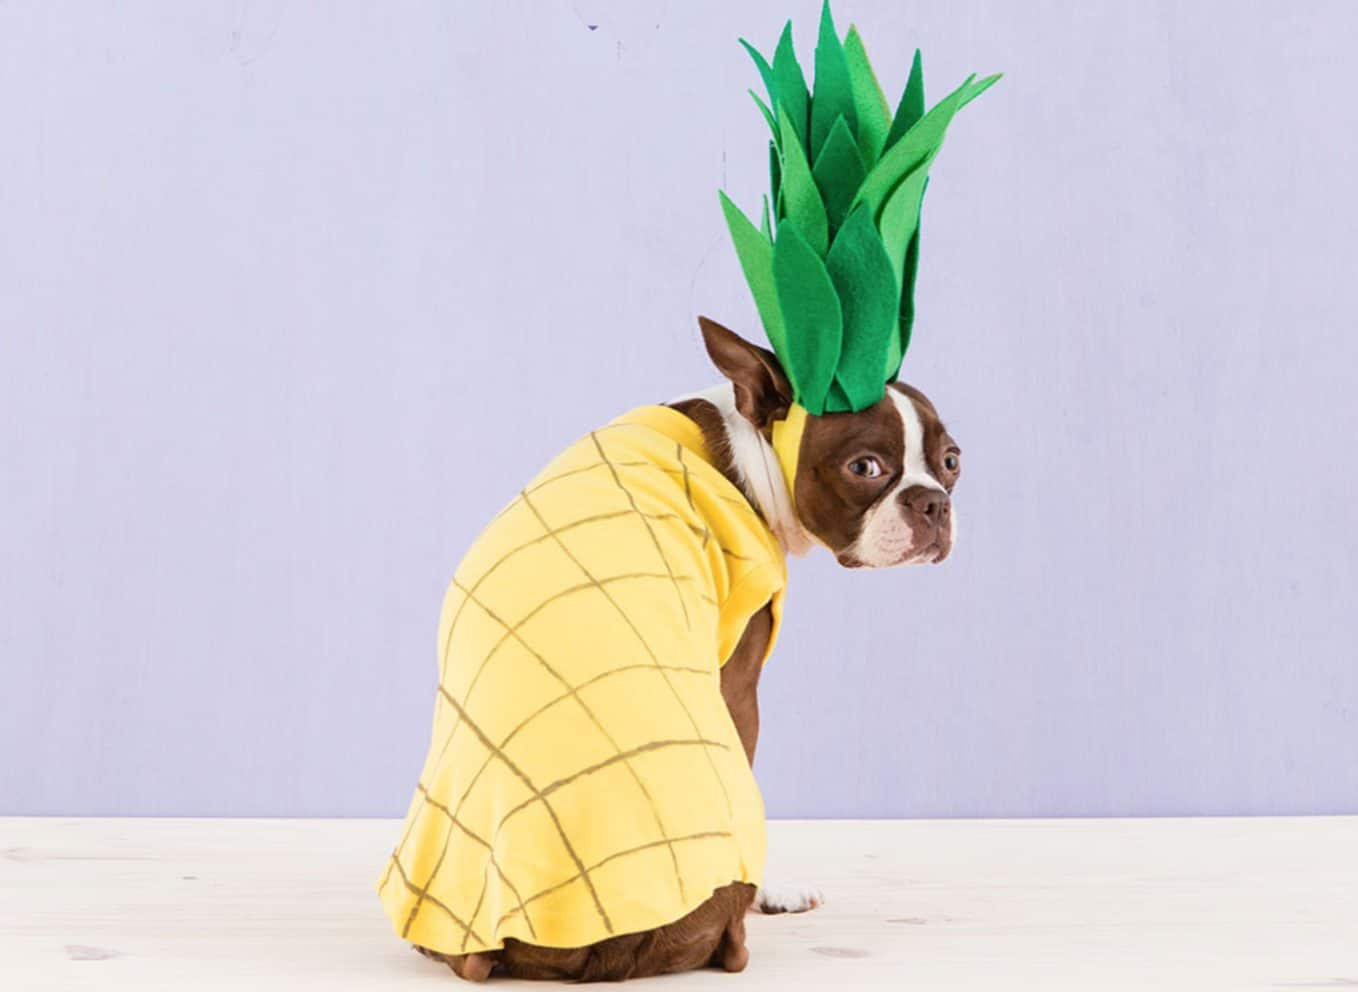 Pineapples have been known to treat several dog diseases and illnesses.